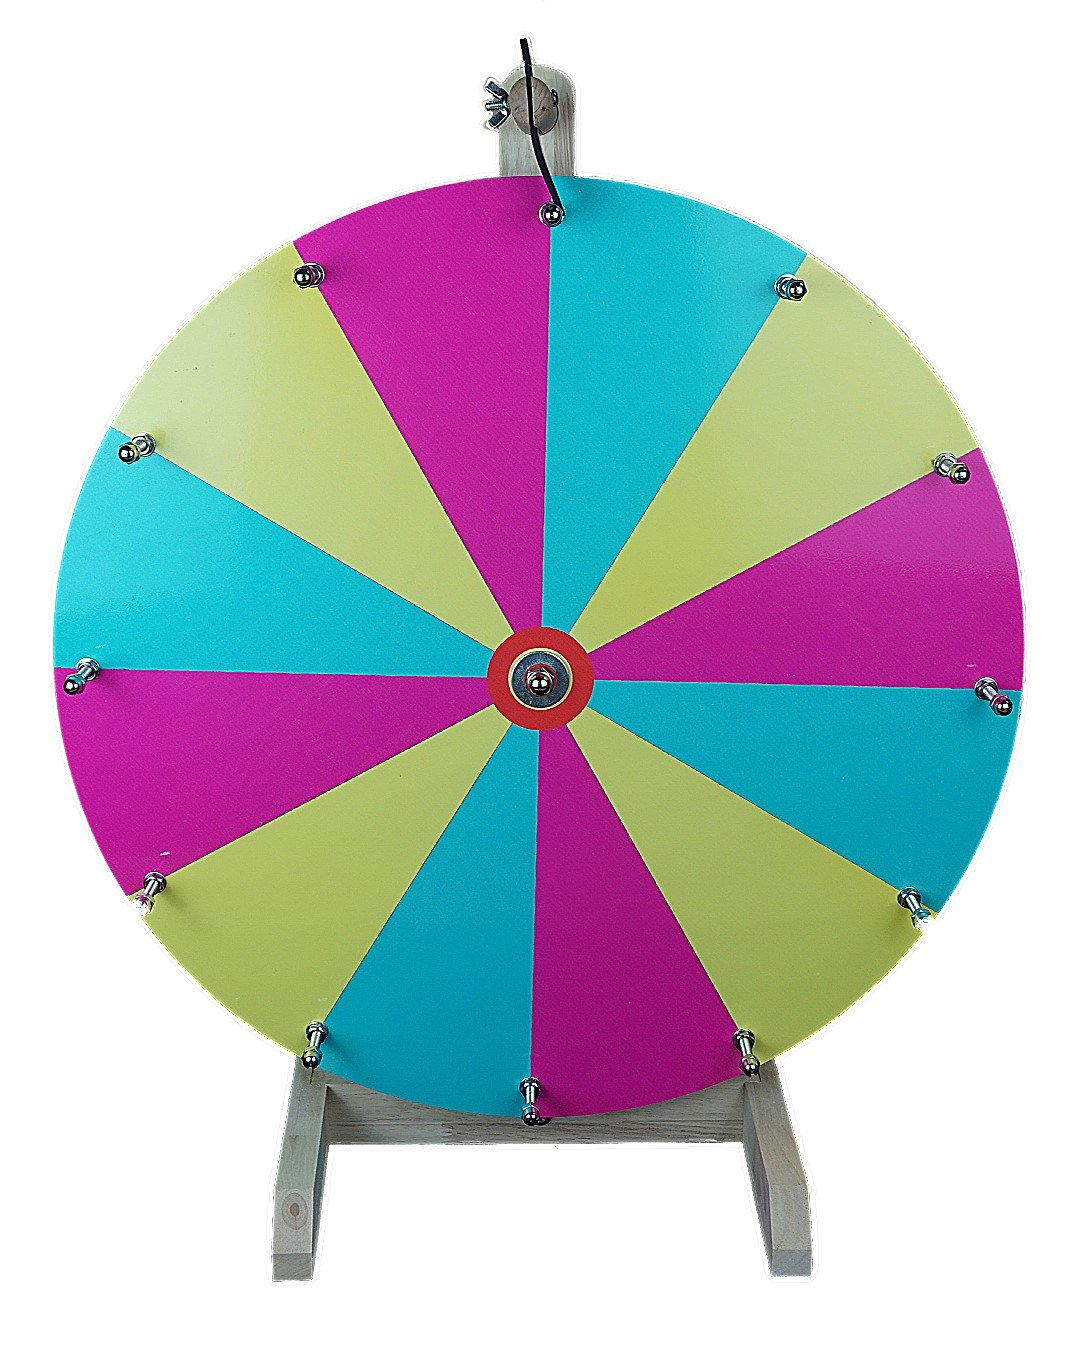 20'' Tabletop Color Dry Erase Prize Wheel, Spinning Board w/ 12 Slots and Wood Stand